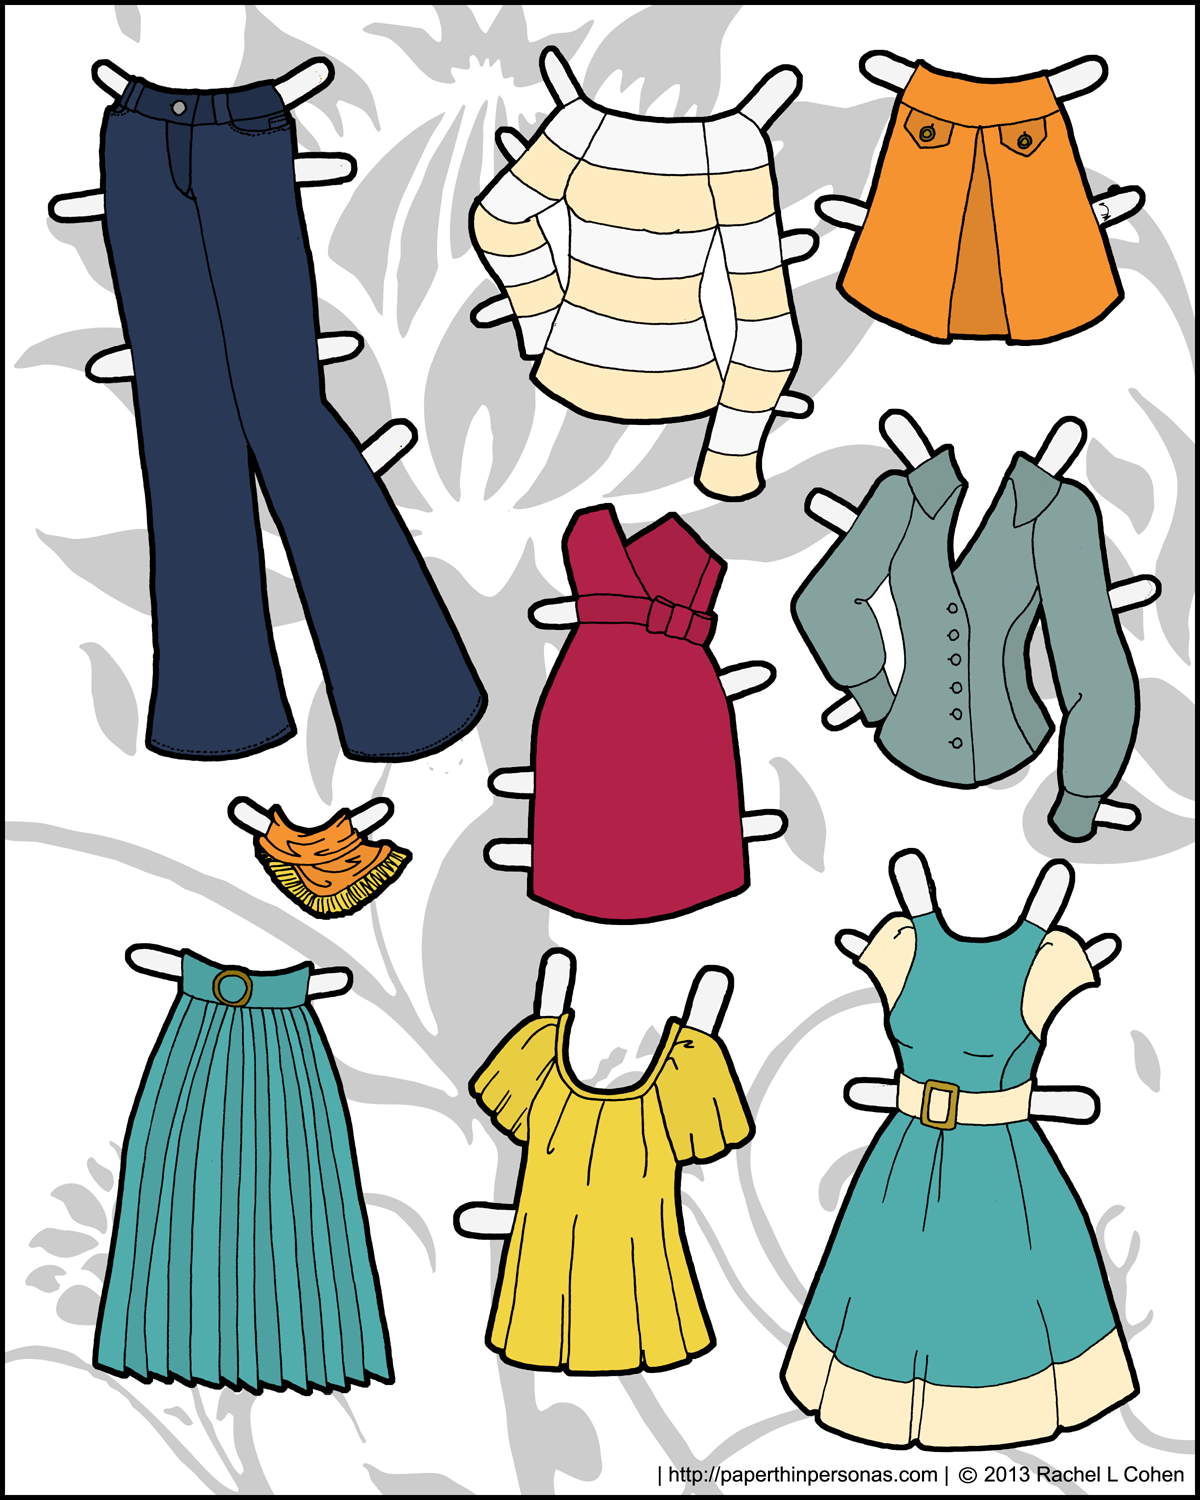 And yet more clothing for the Ms Mannequin Printable Paper Dolls